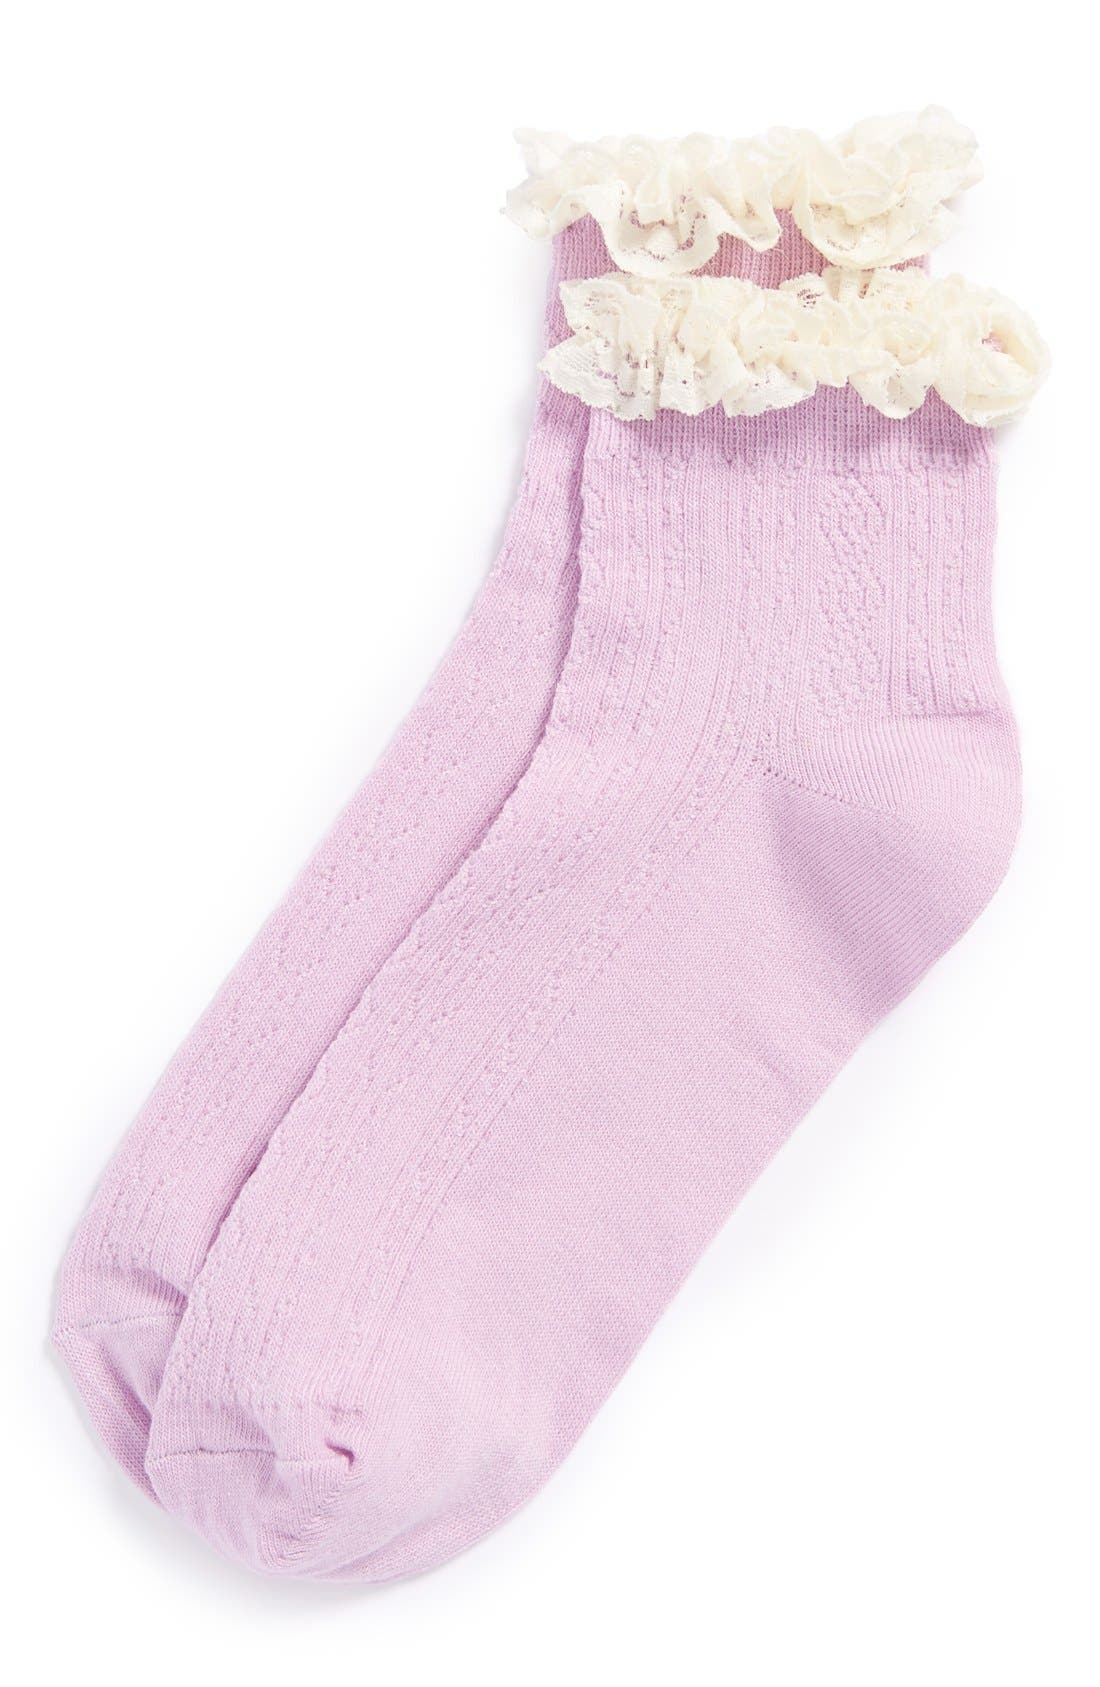 Alternate Image 1 Selected - Topshop Crocheted Lace Socks